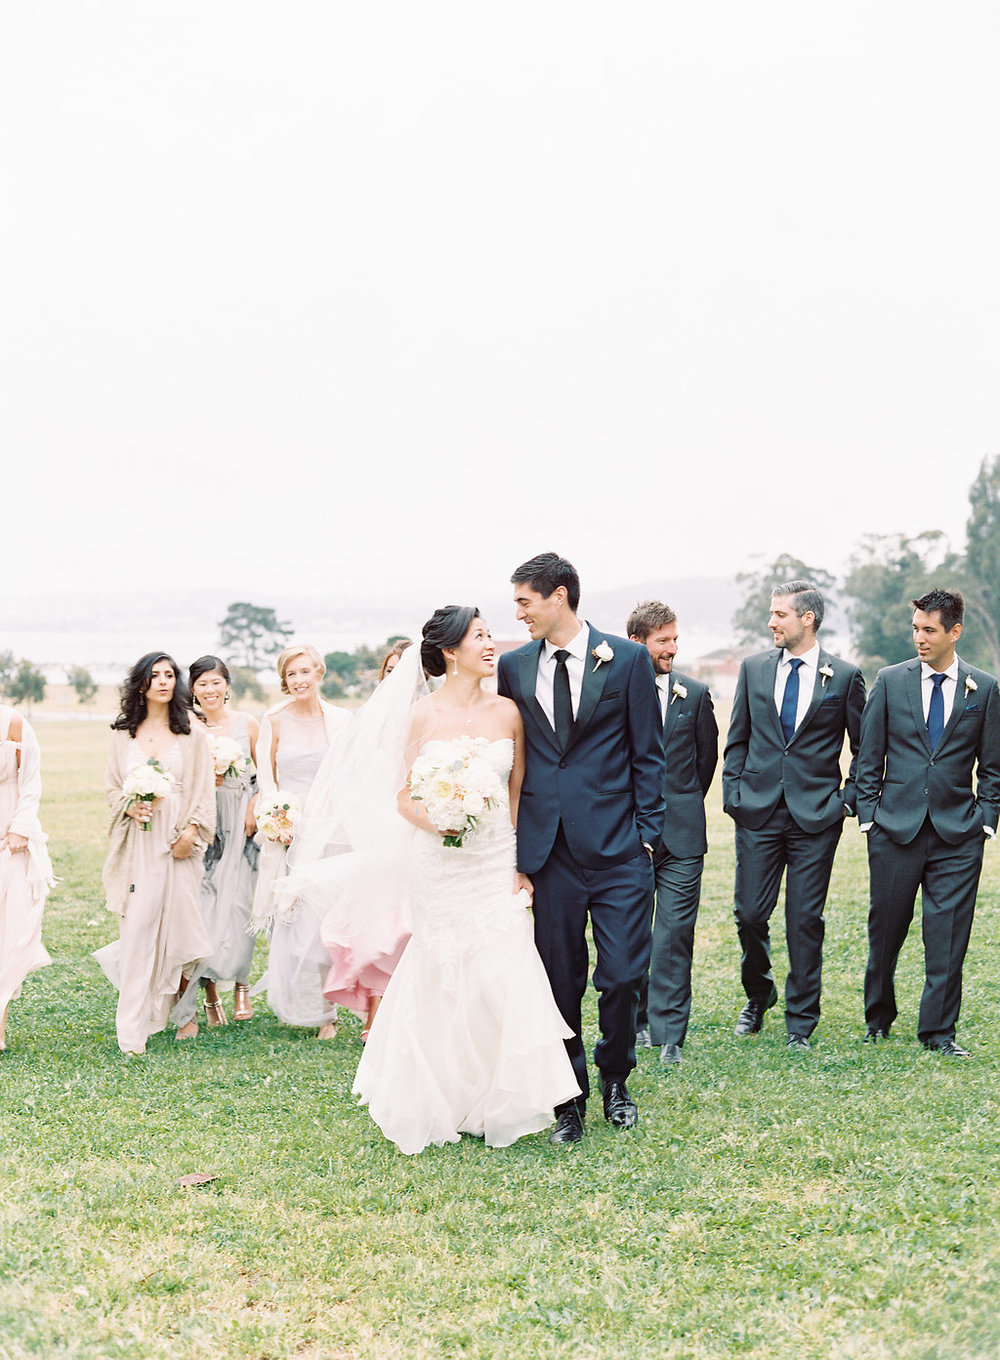 Cavallo-Point-Wedding-San-Francisco- Film-Photographer-183.jpg